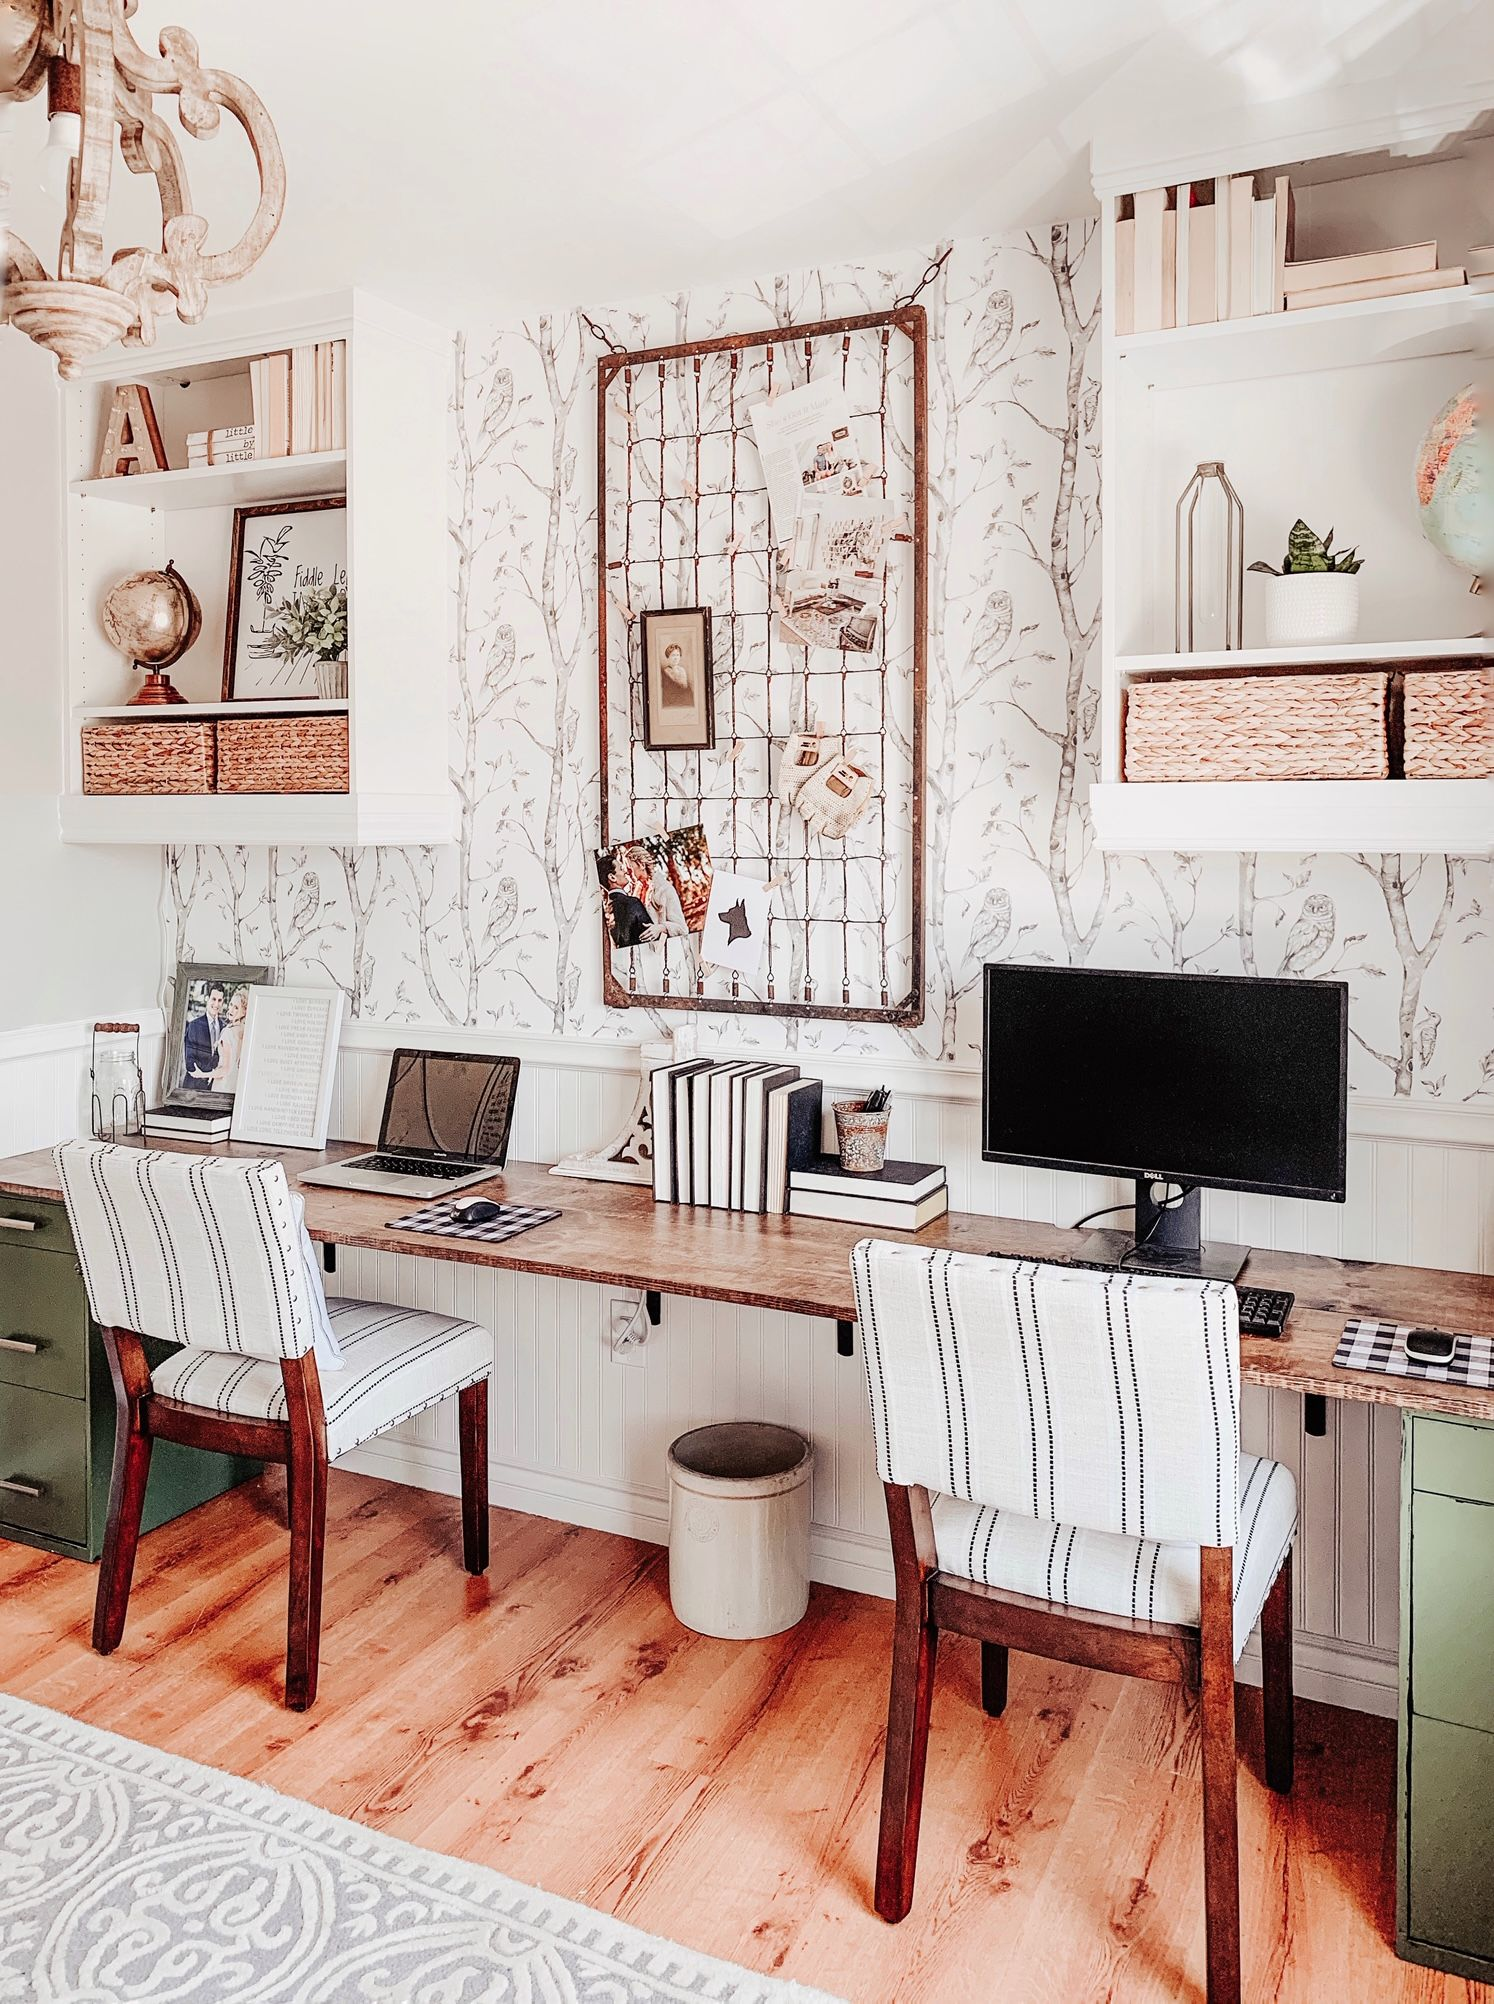 13 DIY Home Office Decor Ideas - Best Home Office Decor Projects